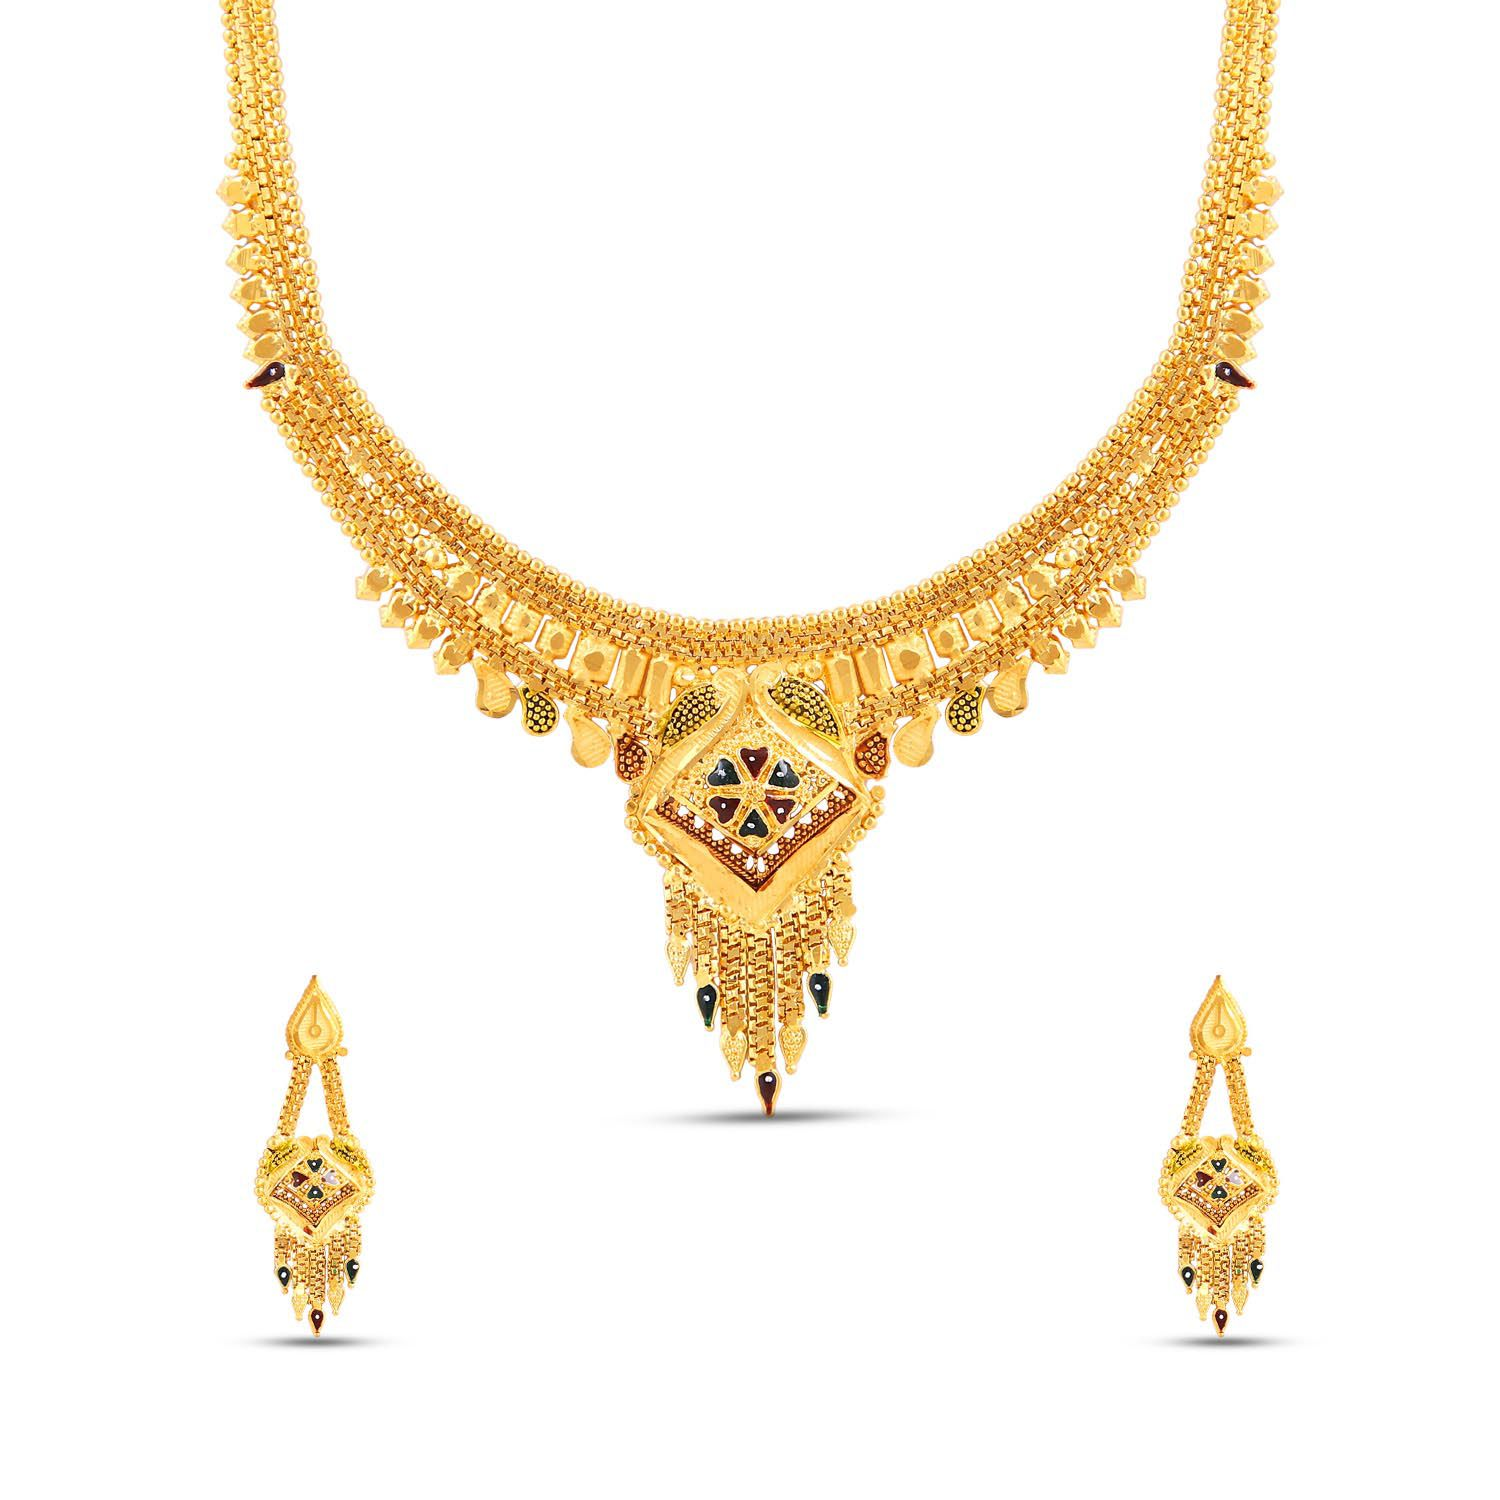 Jewlot (Group of Kalyani Covering)21k Gold Plated Necklace set for women and Girls